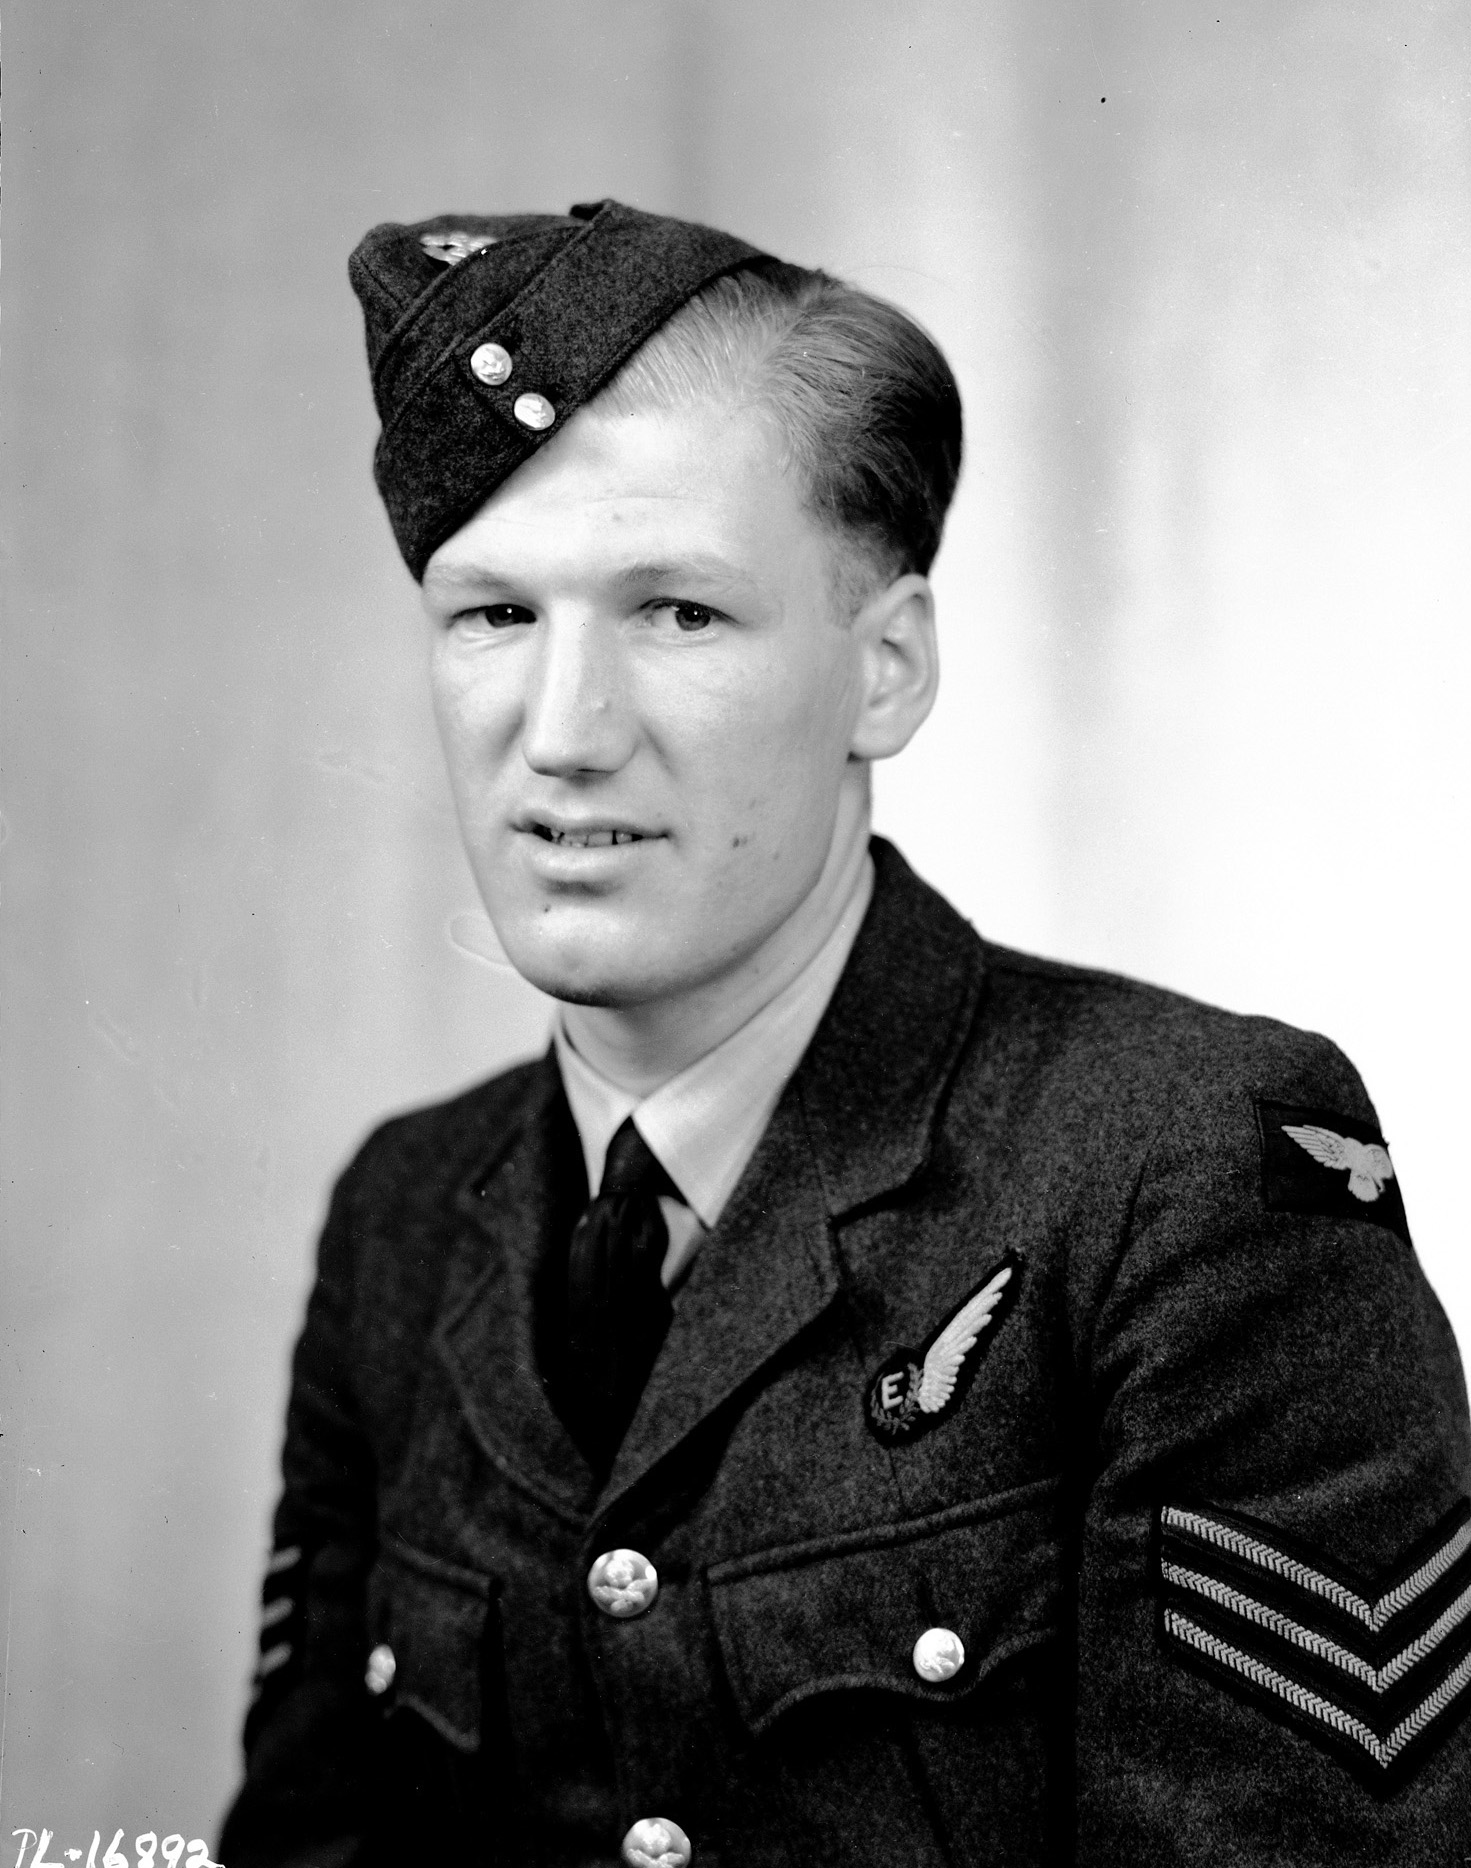 Sergeant William Radcliffe, RCAF, was photographed in London, England, shortly after the Dambusters raid. PHOTO: DND Archives, PL-16892